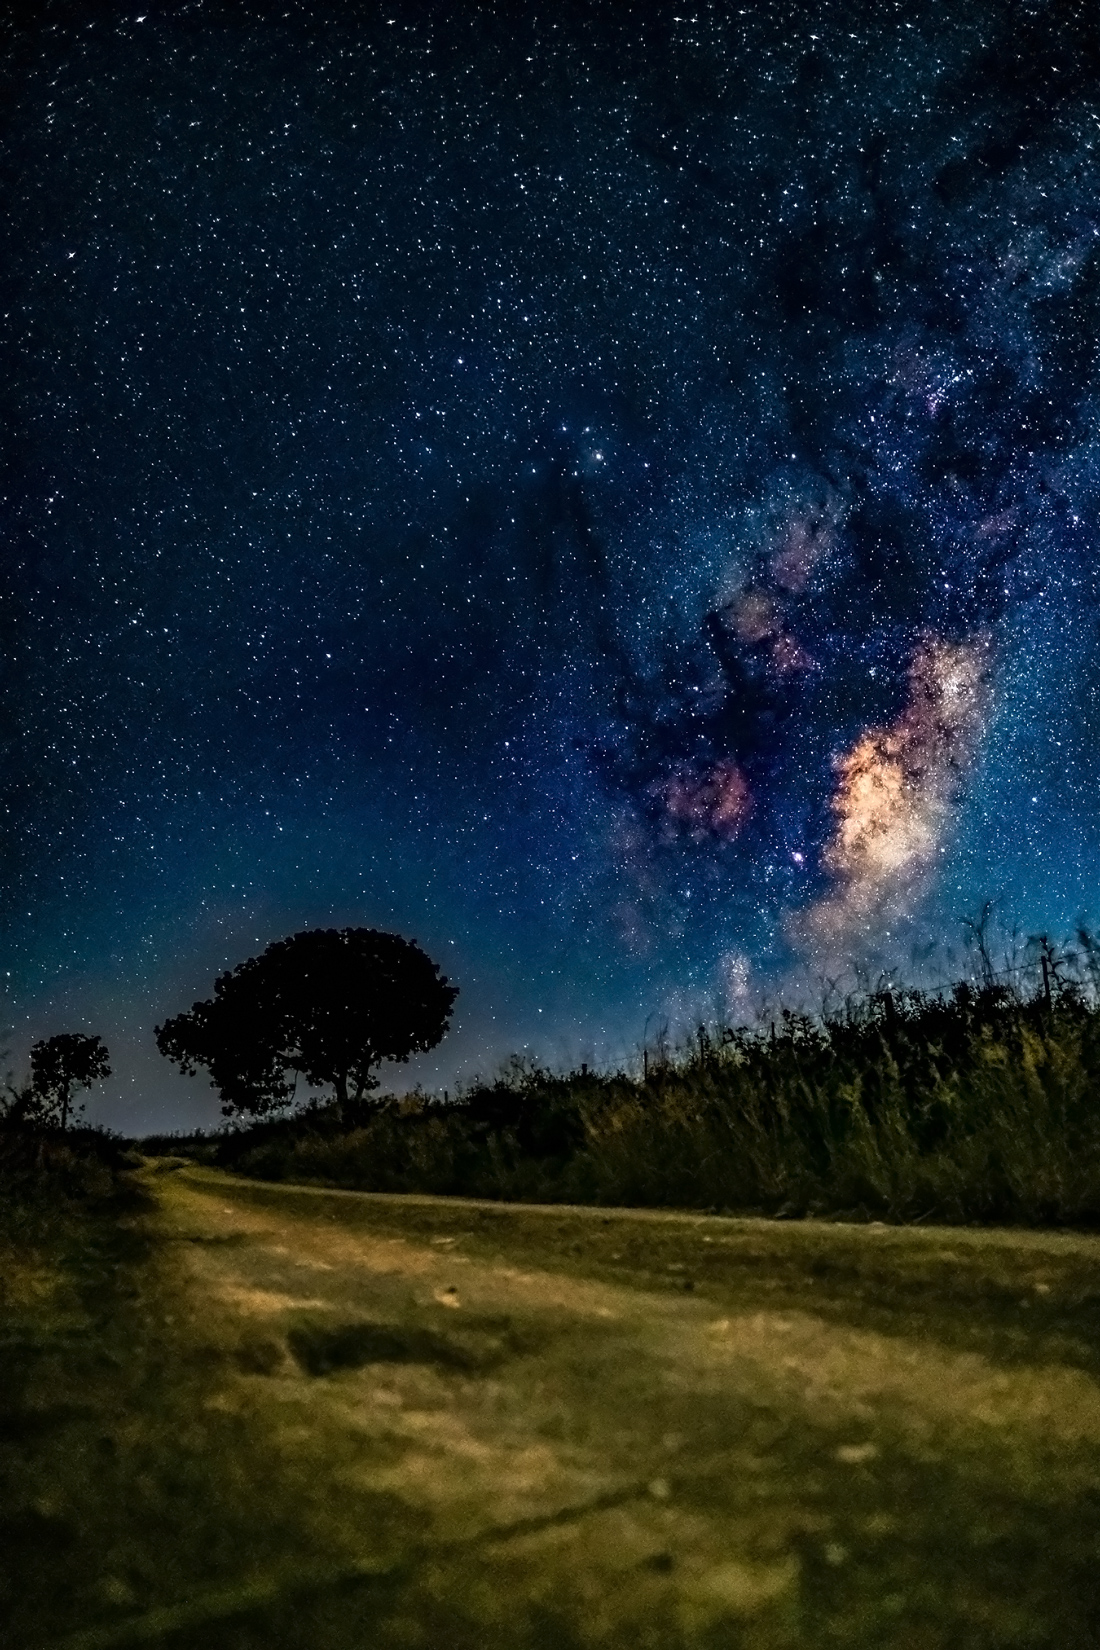 Milky Way on an empty dirt road with silhouetted tree in the distance - night landscape